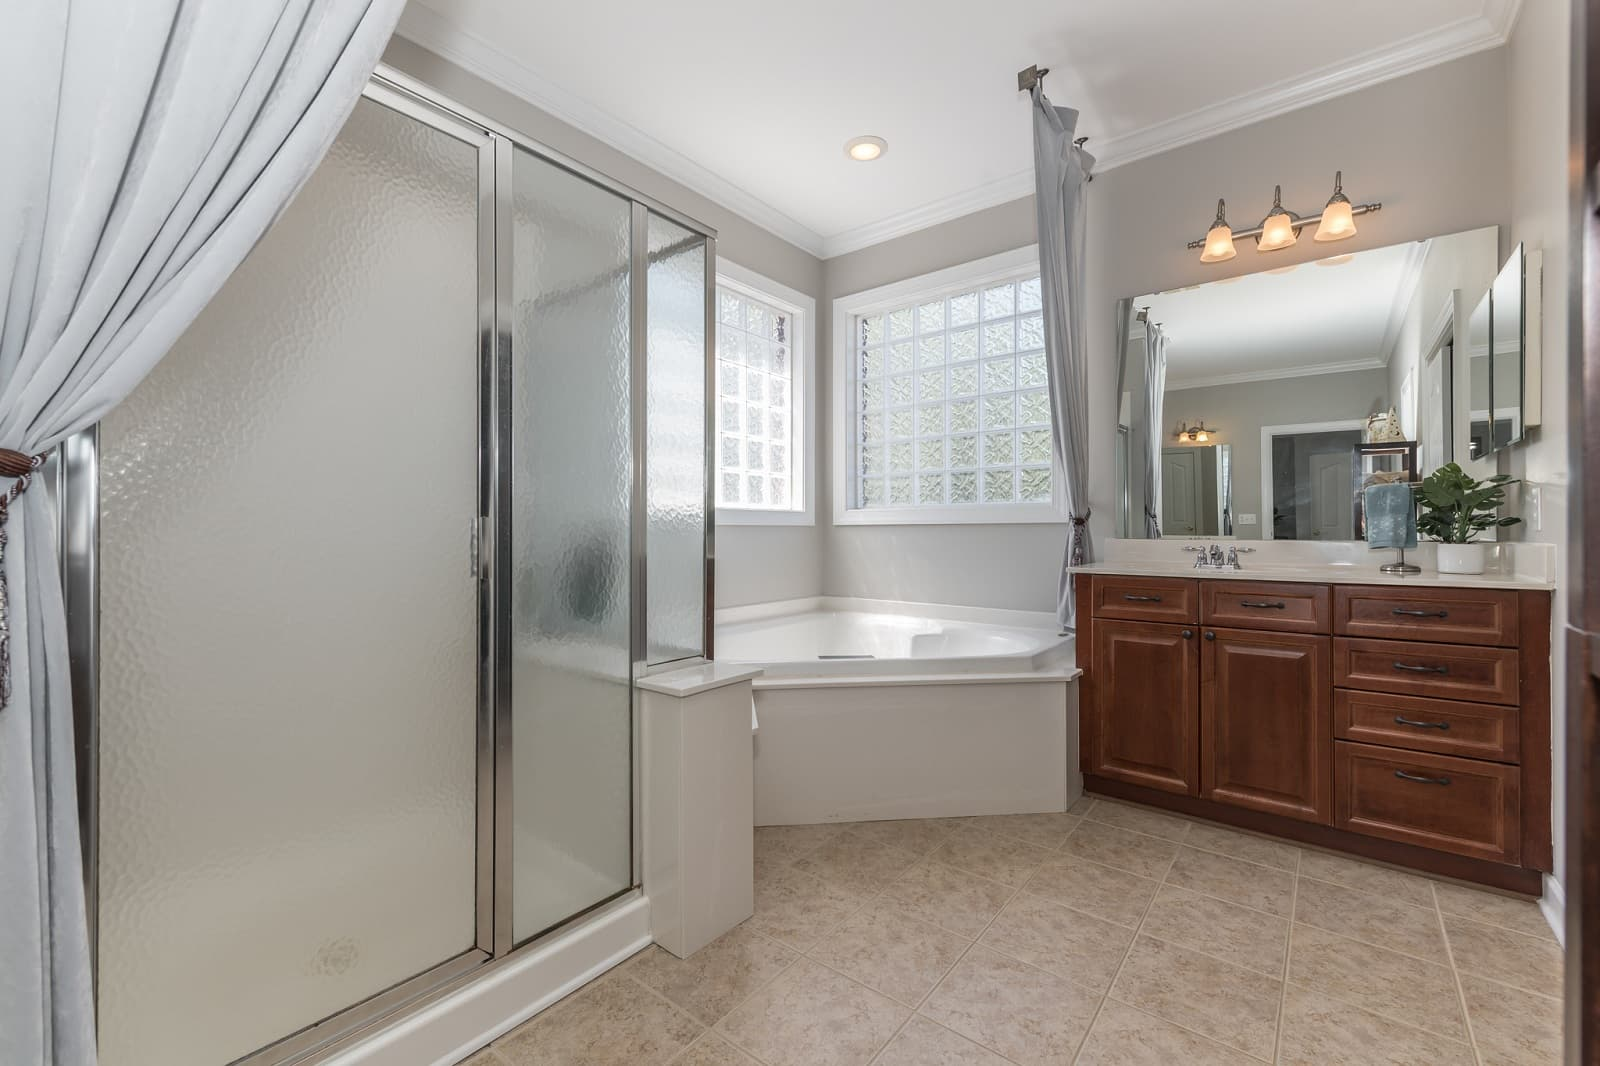 Real Estate Photography in Matthews - NC - USA - Bathroom View